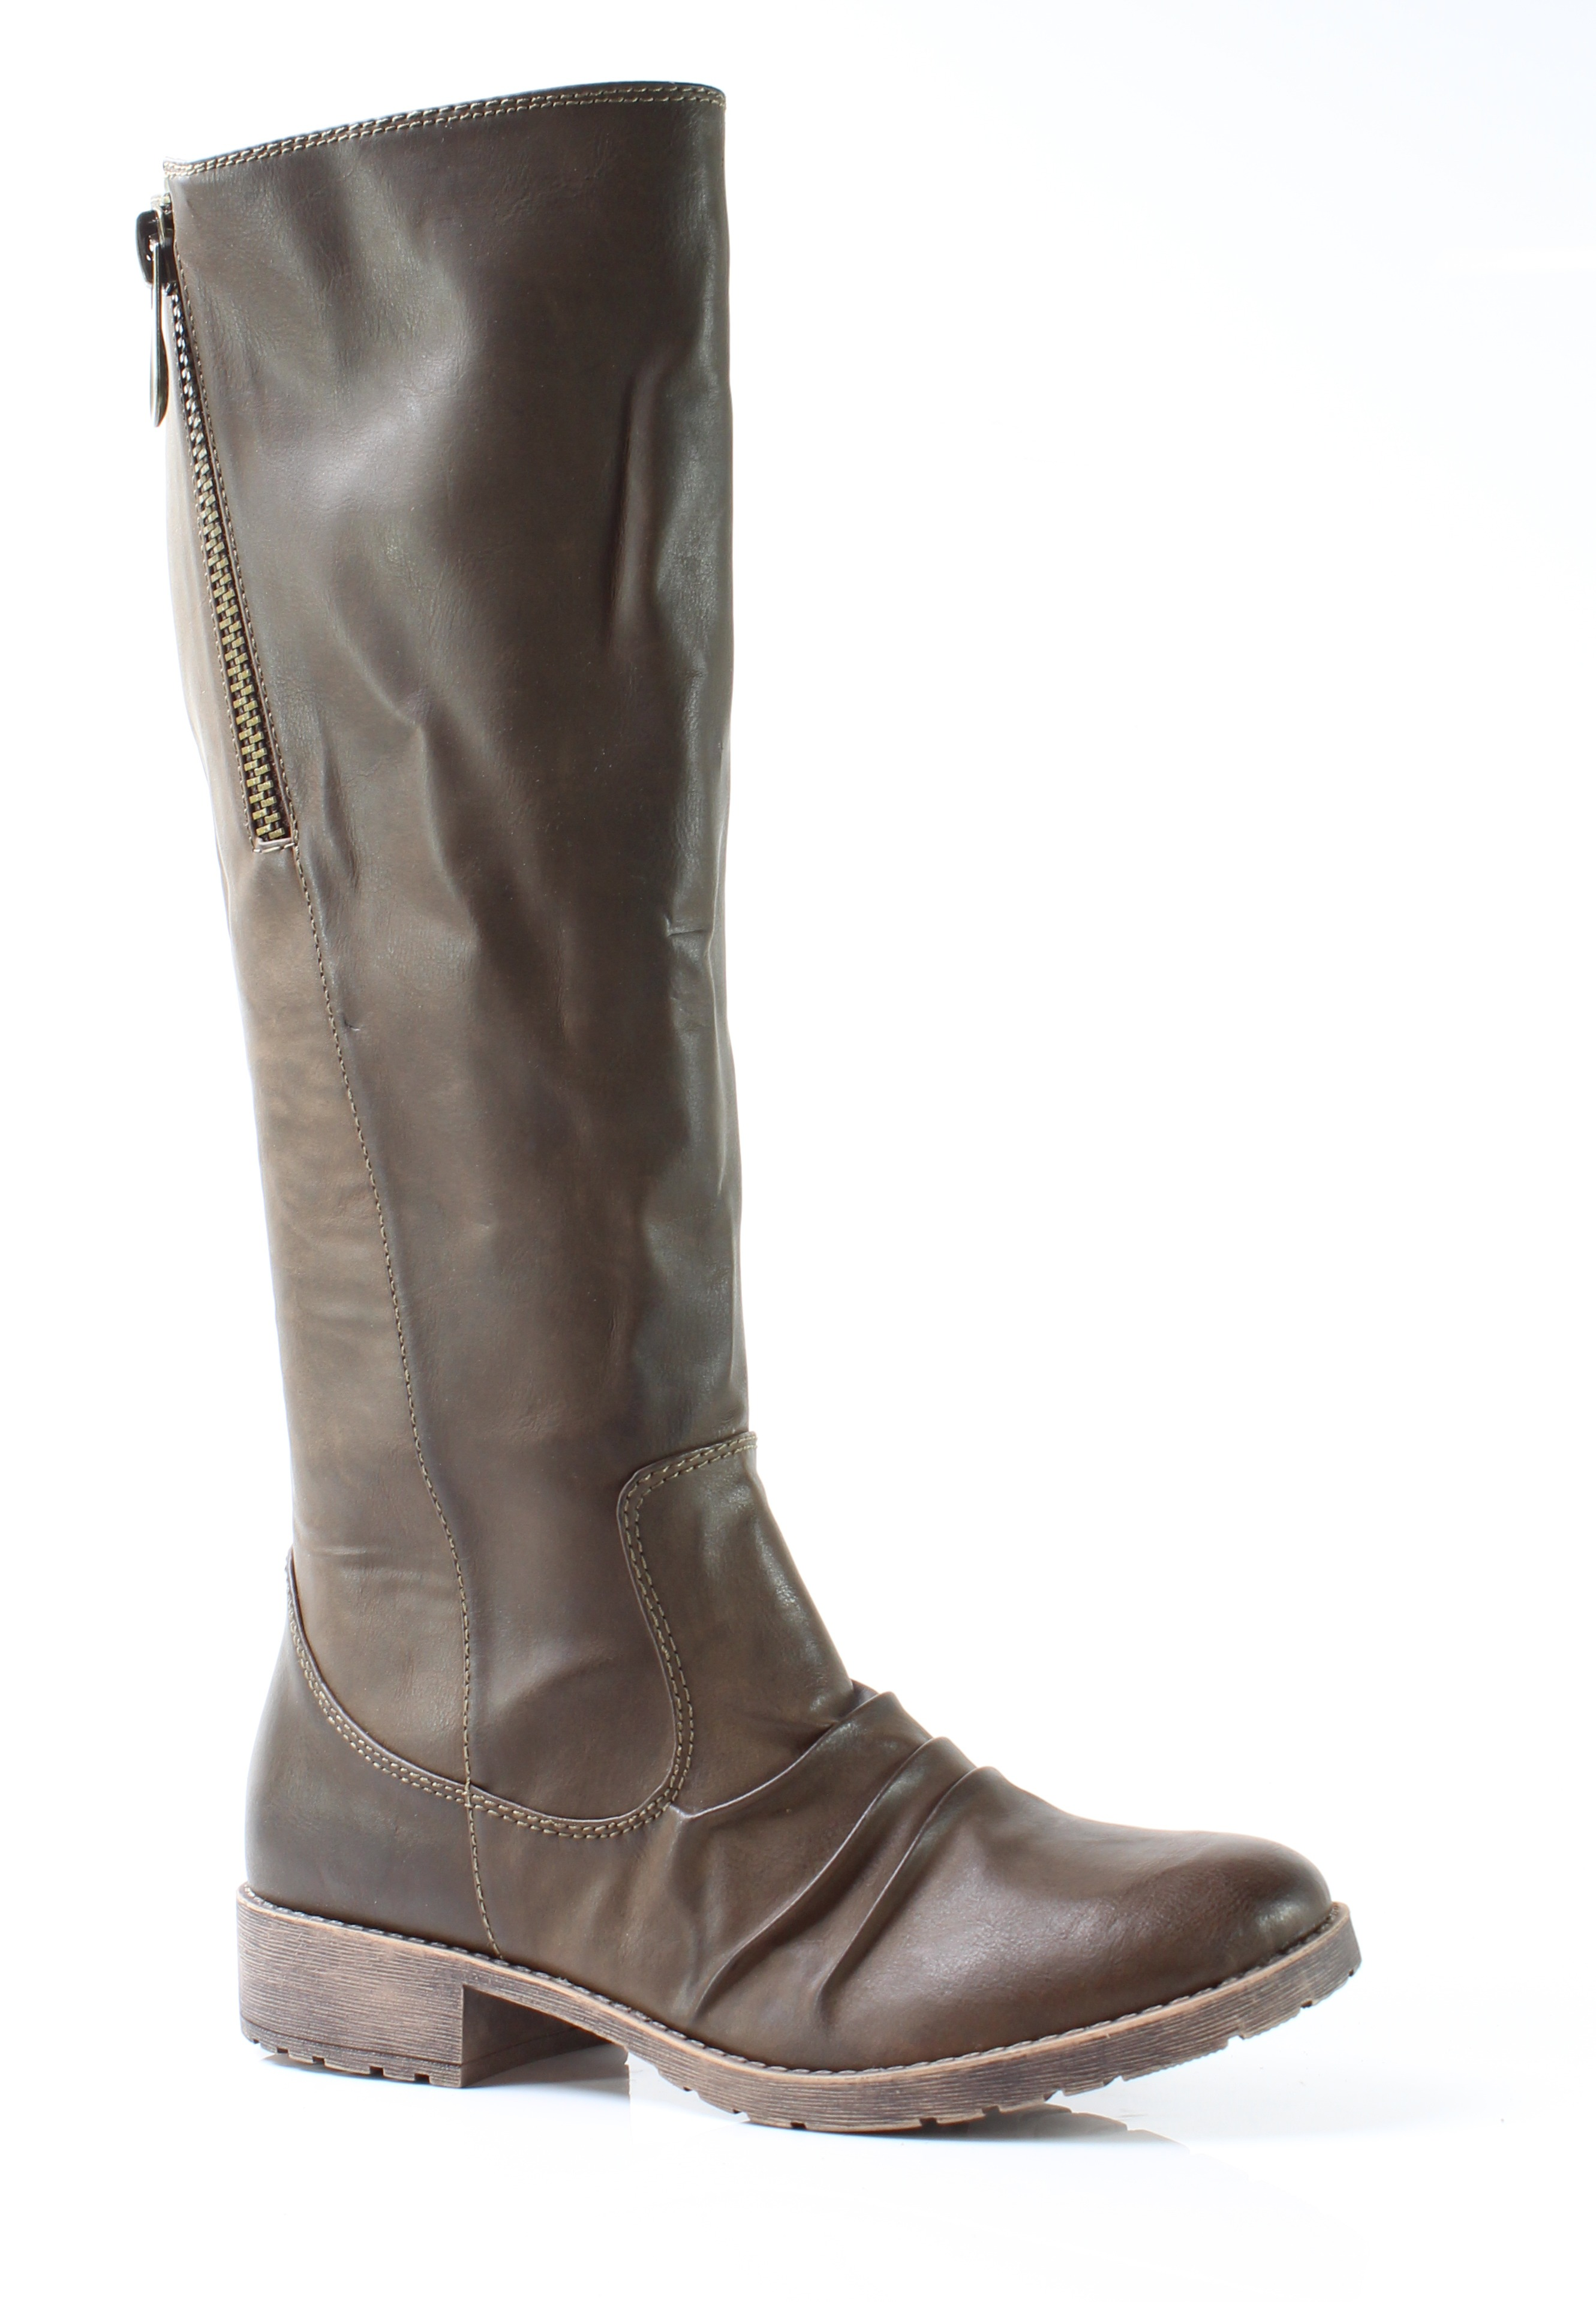 MIA girl NEW Brown Women's Shoes Size 7M Cierra Knee-High Boots $89 #644